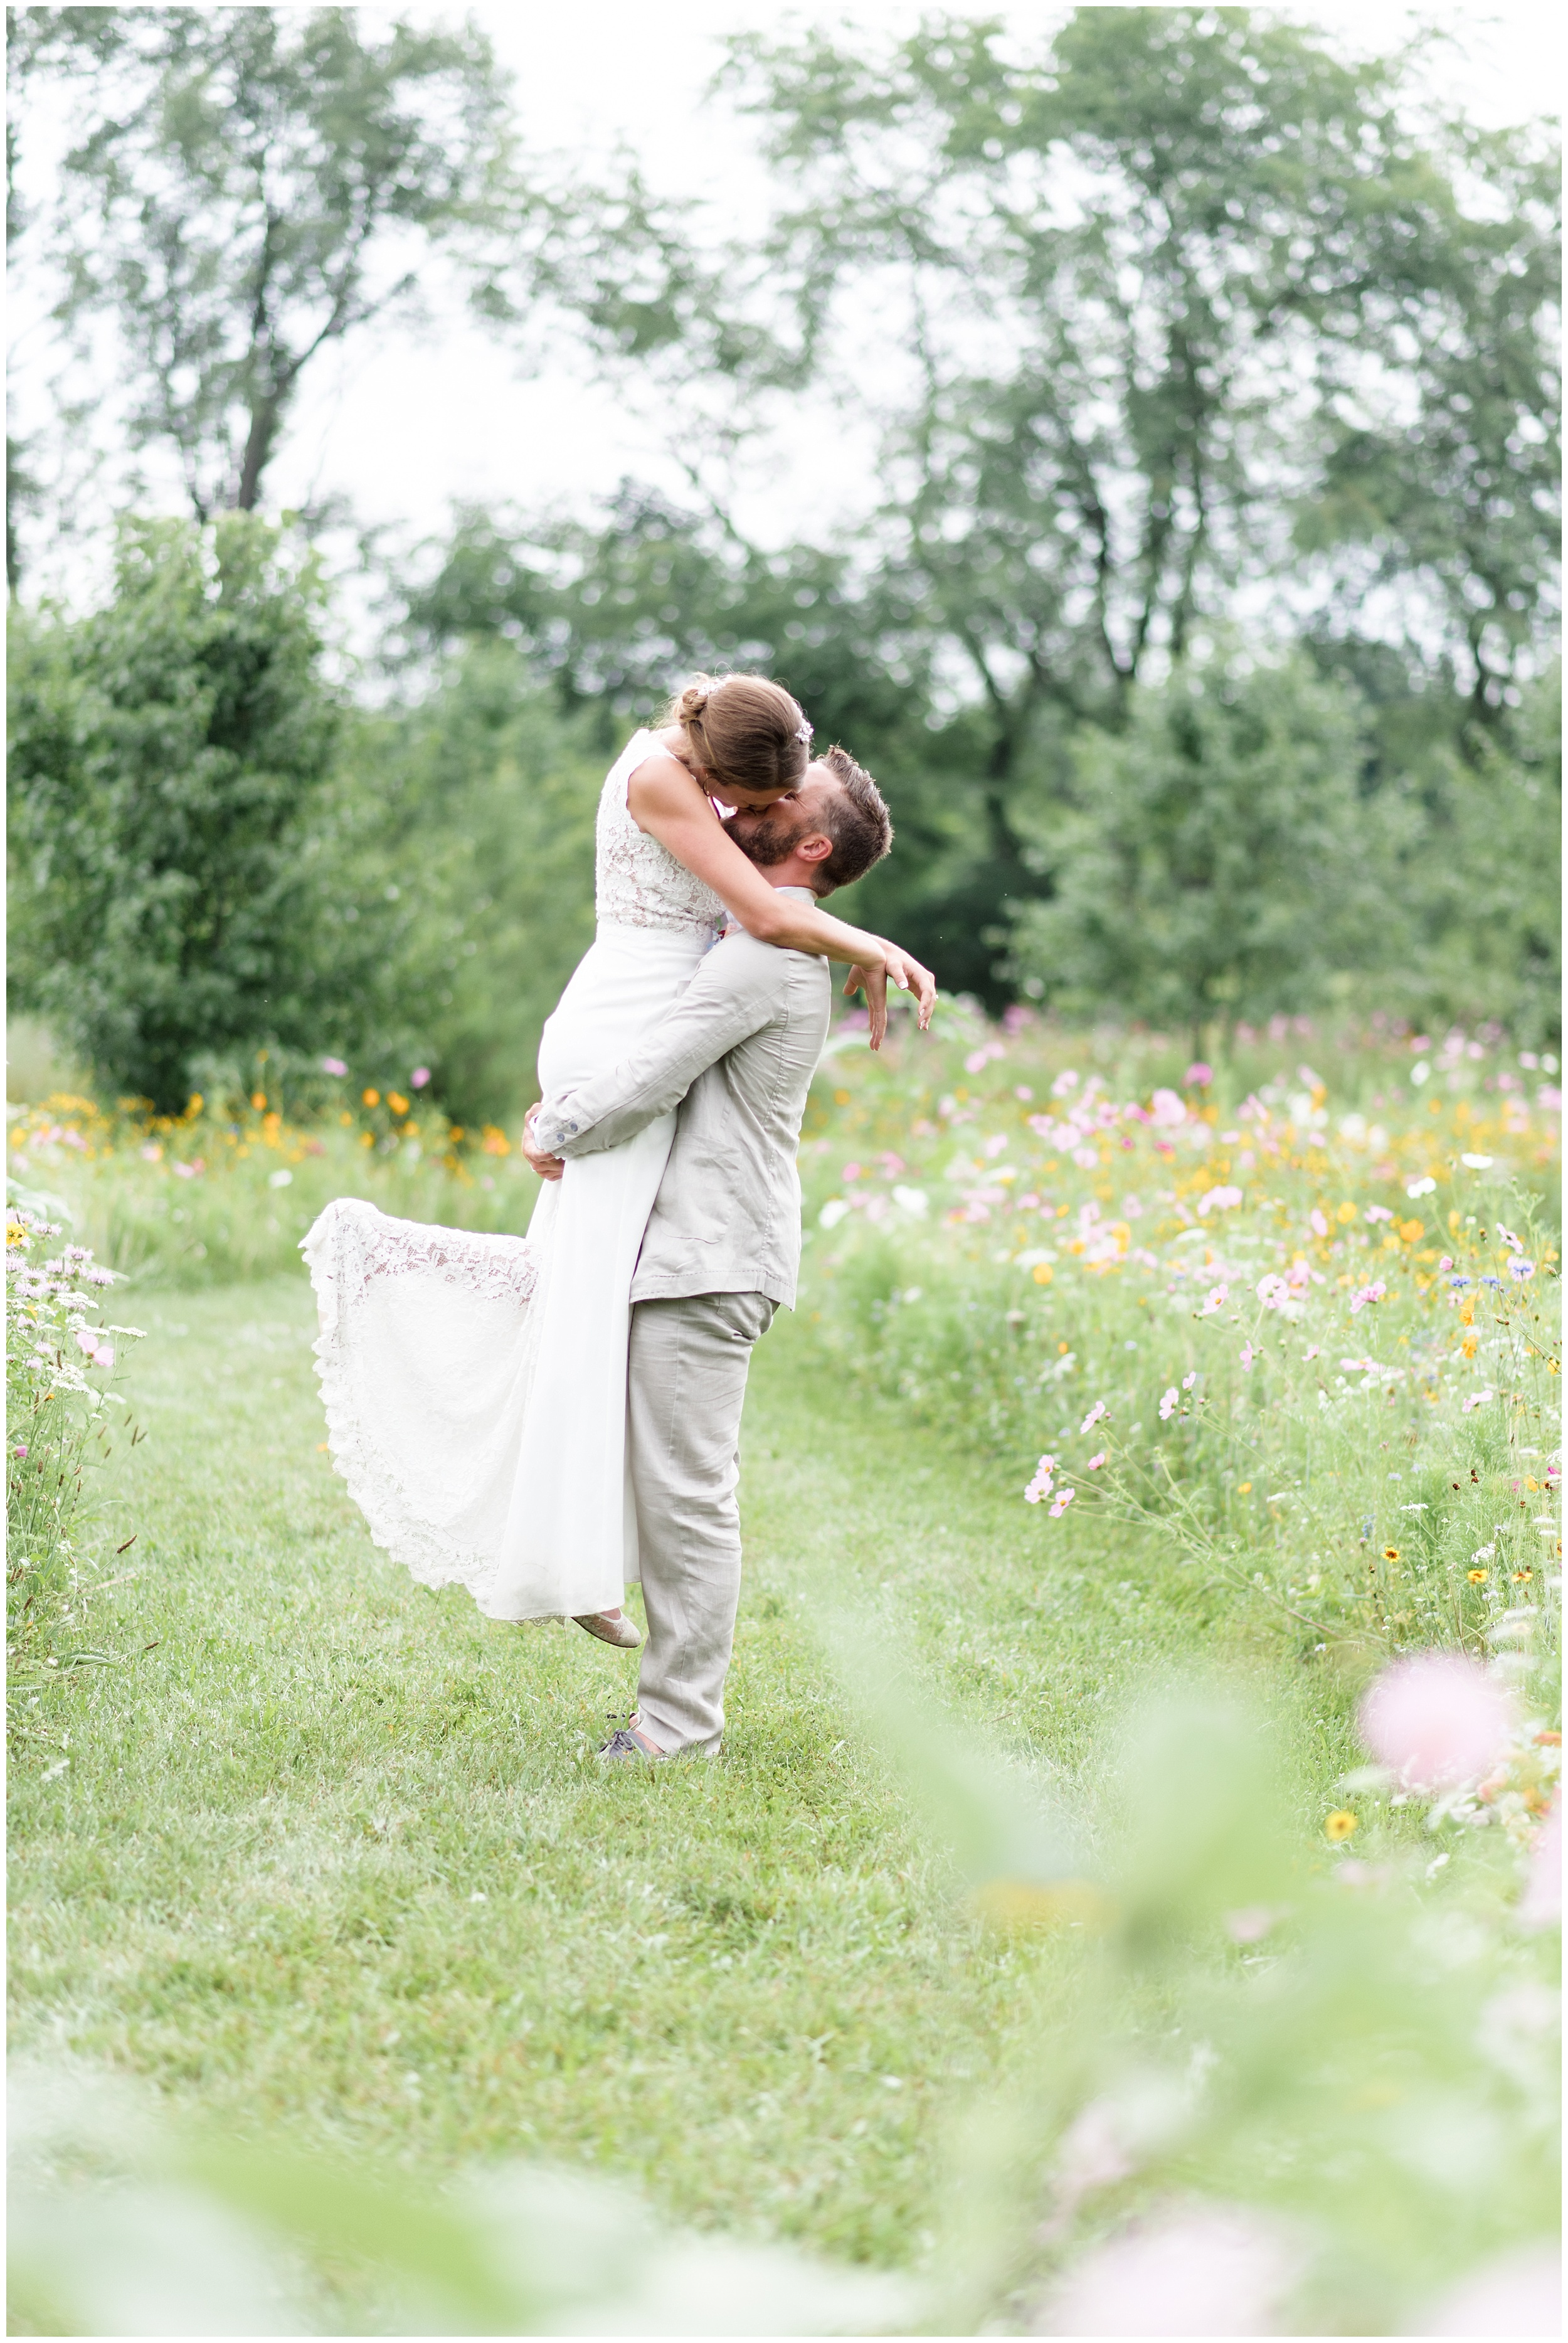 Whimsical-Ethereal-July-Kalamazoo-Wedding-Bright-Airy-Documentary-Milwaukee-Photographer_0078.jpg